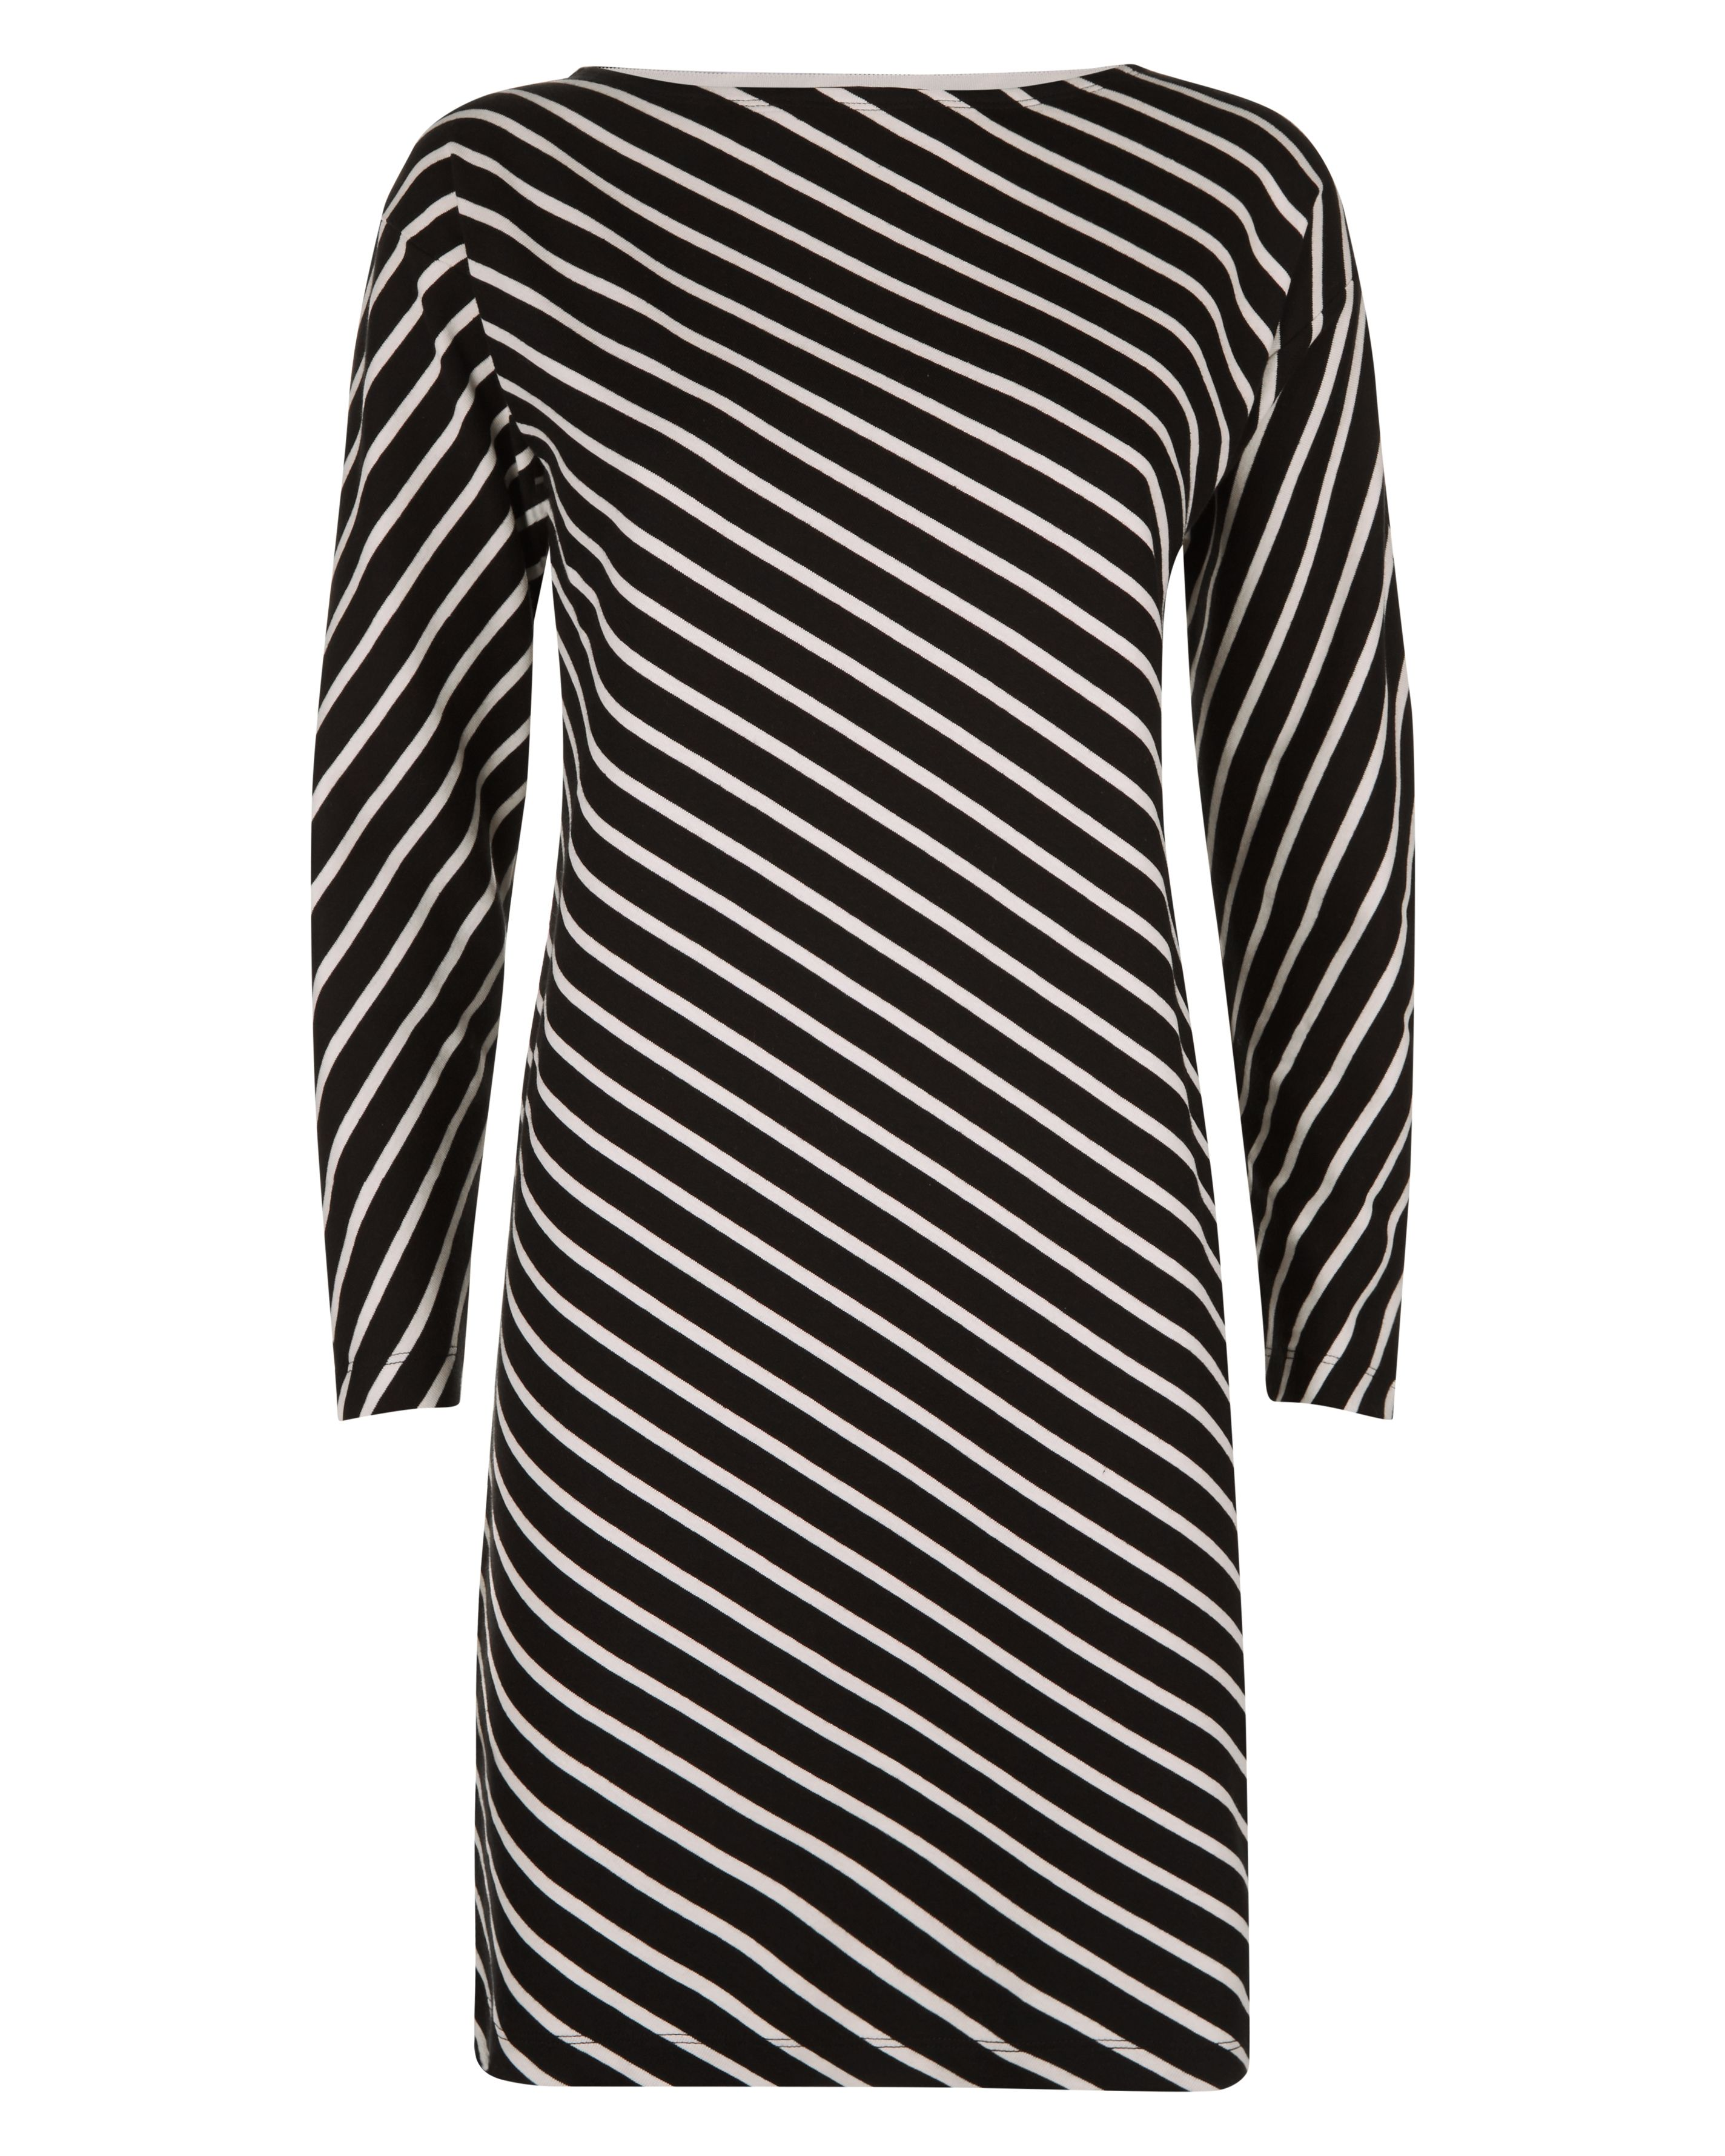 Jaeger Diagonal Breton Stripe Dress, Black